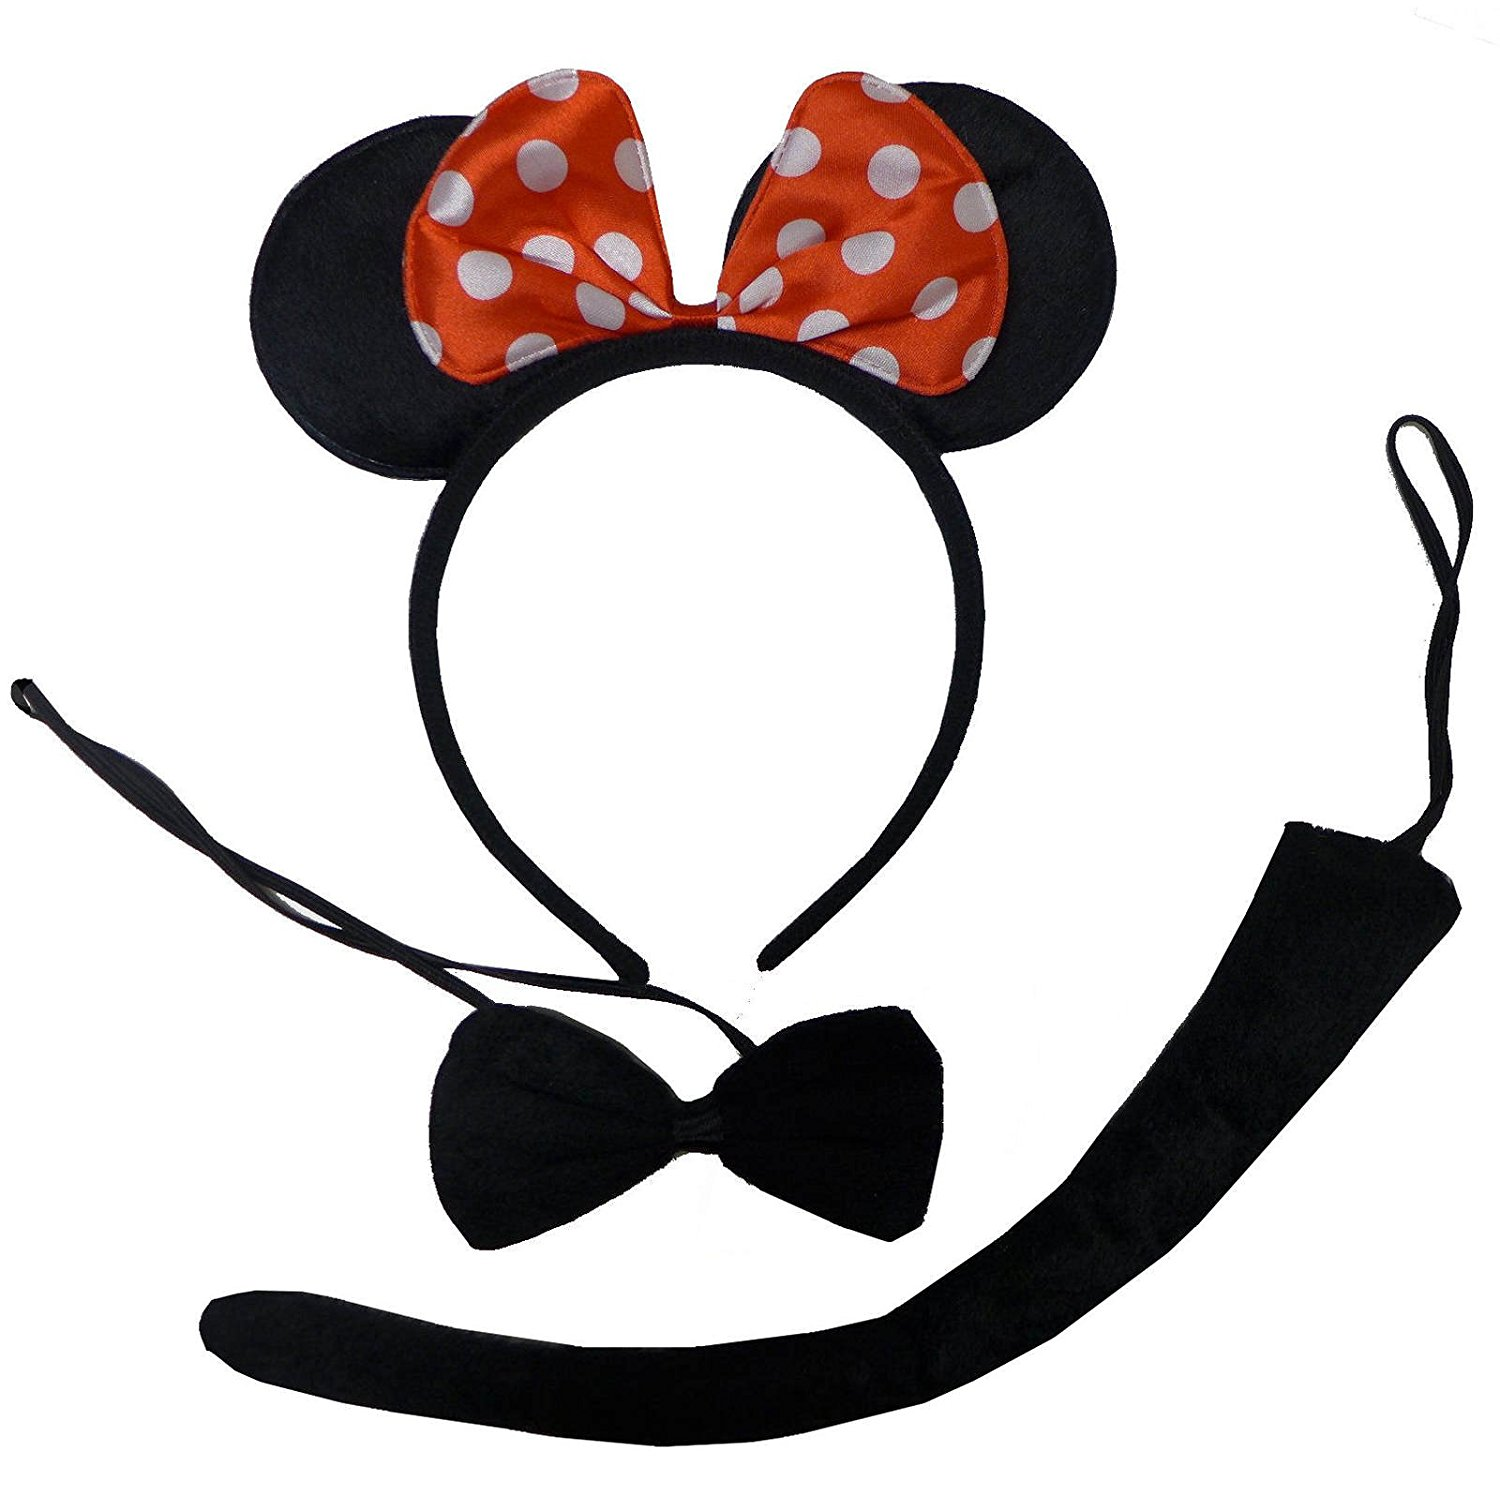 Bow with tails clipart black and white clip transparent Minnie Mouse Black And White | Free download best Minnie Mouse Black ... clip transparent